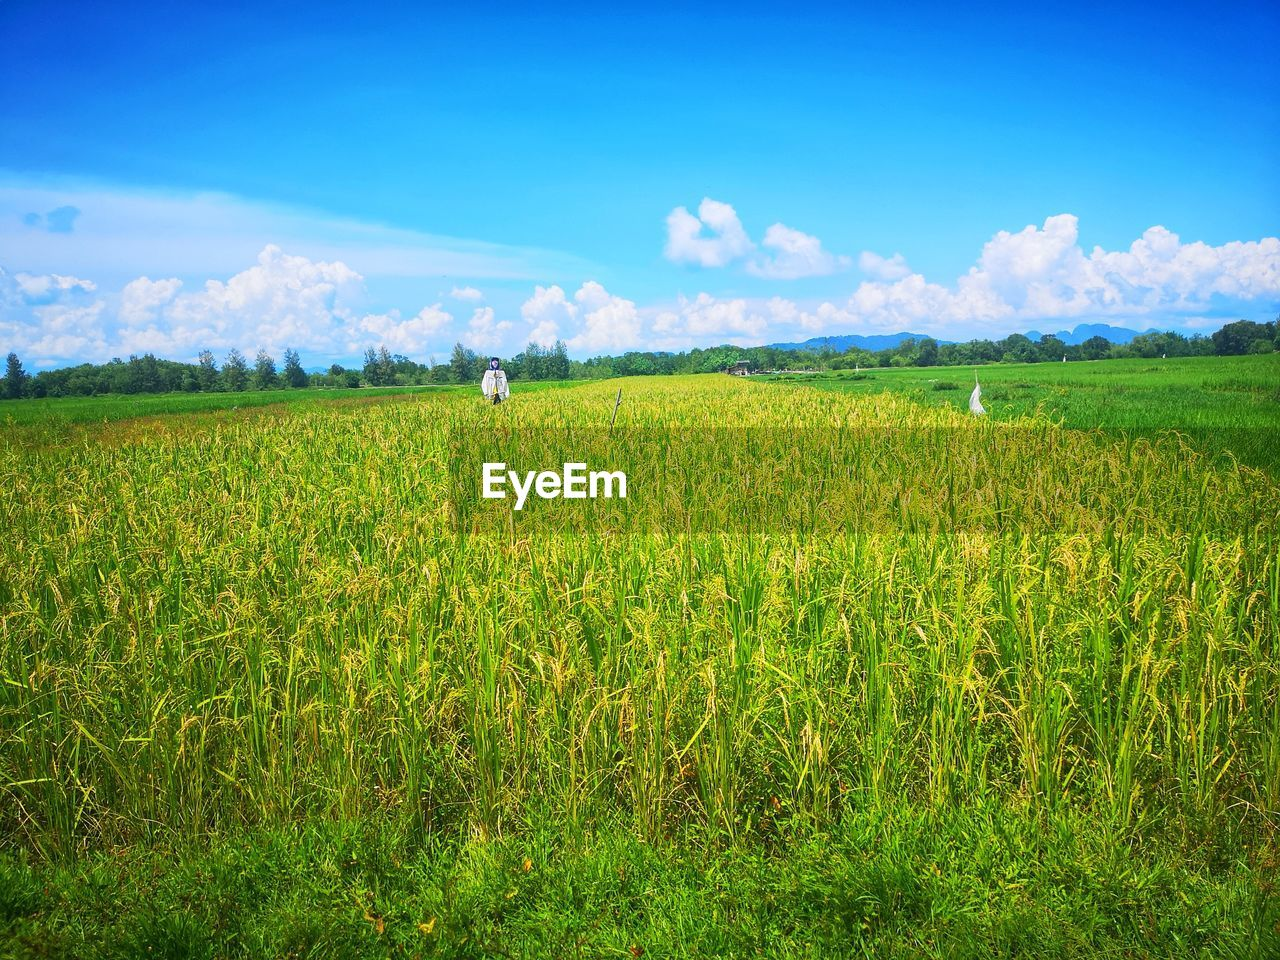 field, plant, land, landscape, sky, growth, green color, agriculture, beauty in nature, environment, scenics - nature, rural scene, tranquility, tranquil scene, cloud - sky, nature, crop, farm, day, grass, no people, outdoors, plantation